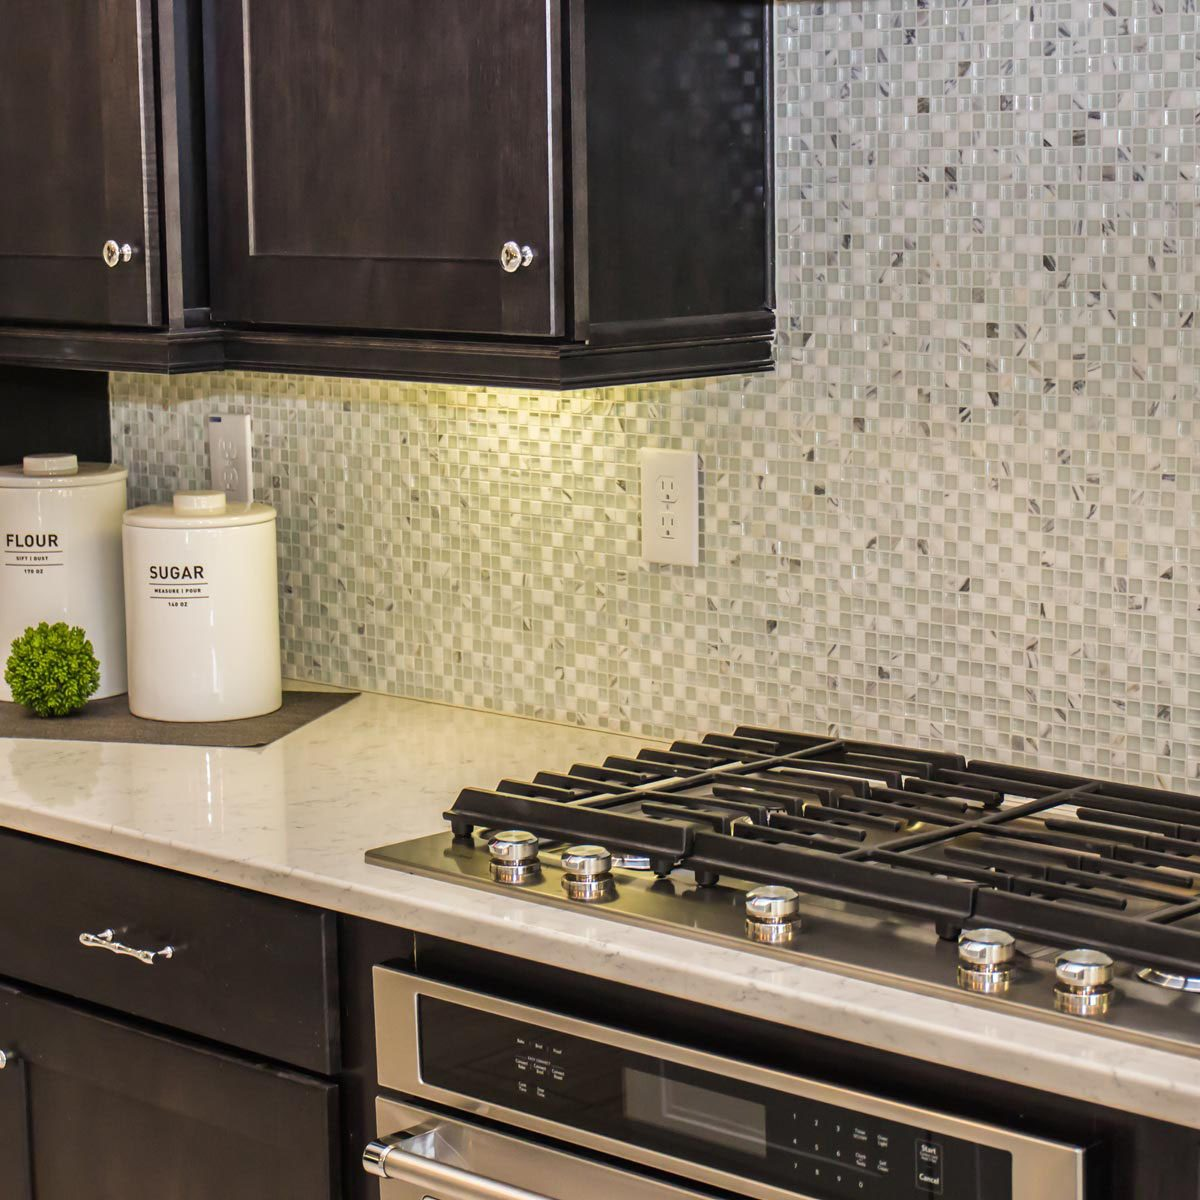 White-mosaic-backsplash-in-kitchen-with-dark-cabinets